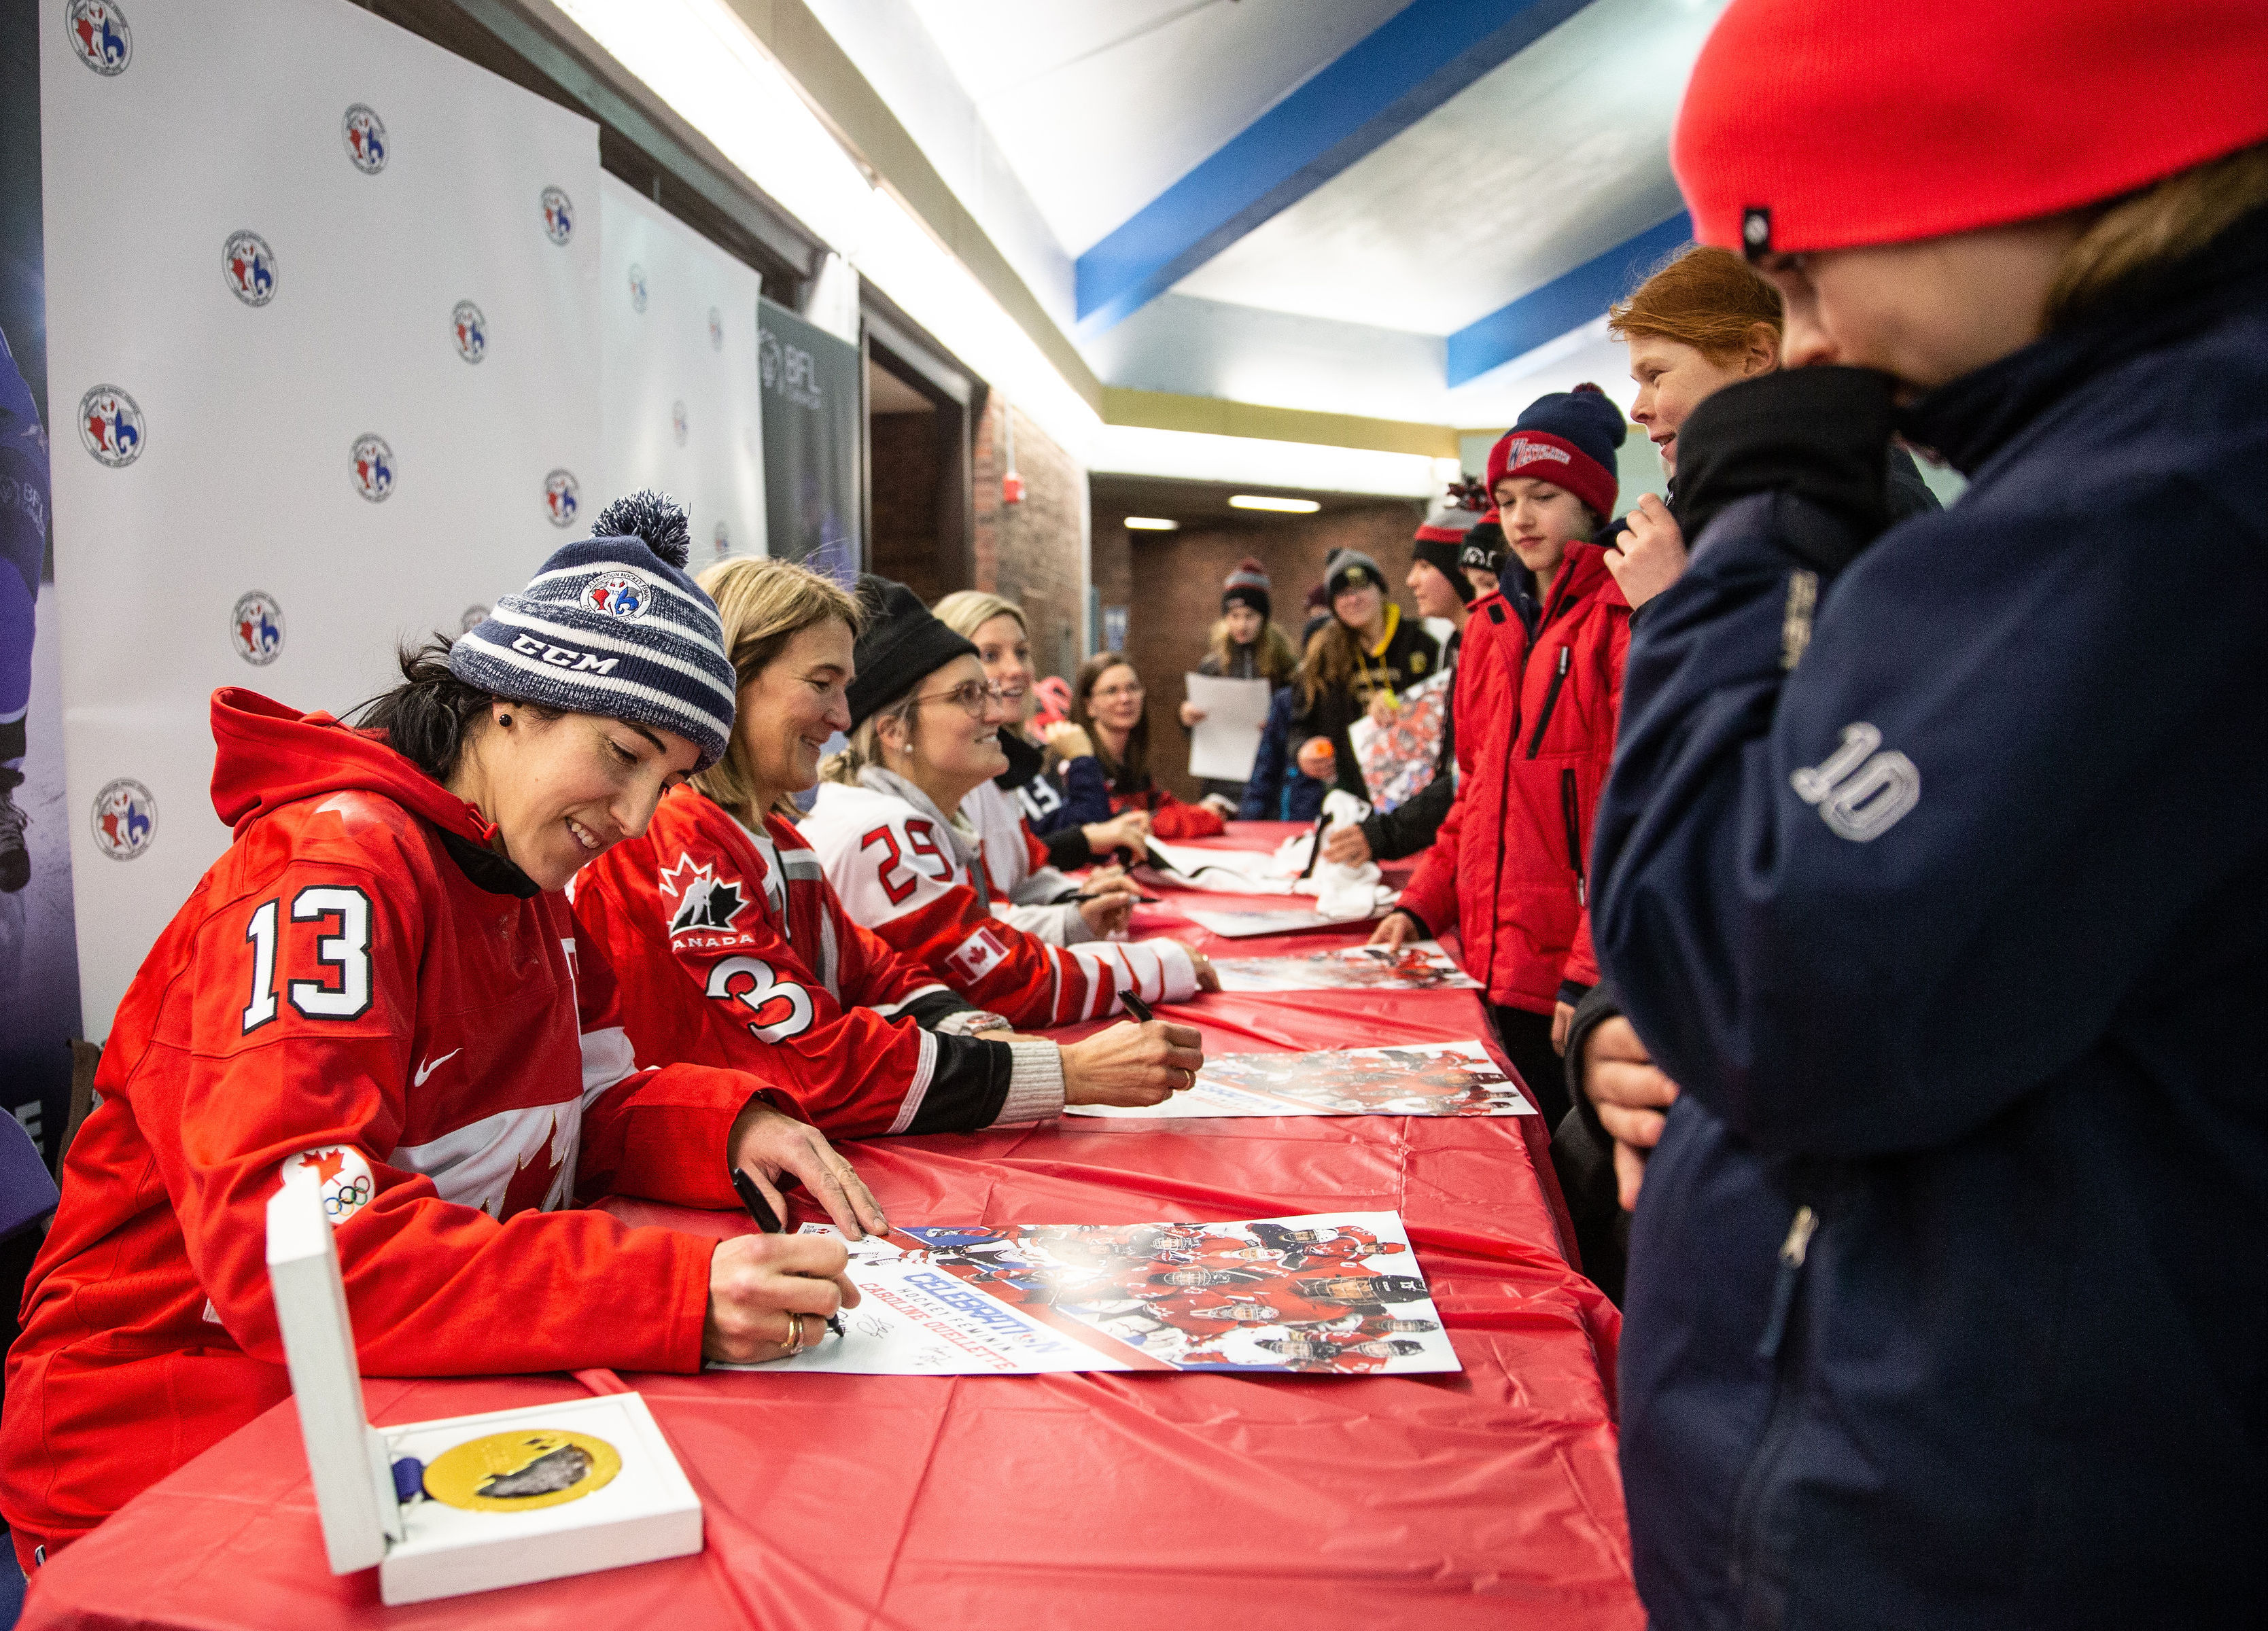 Players signing autographs